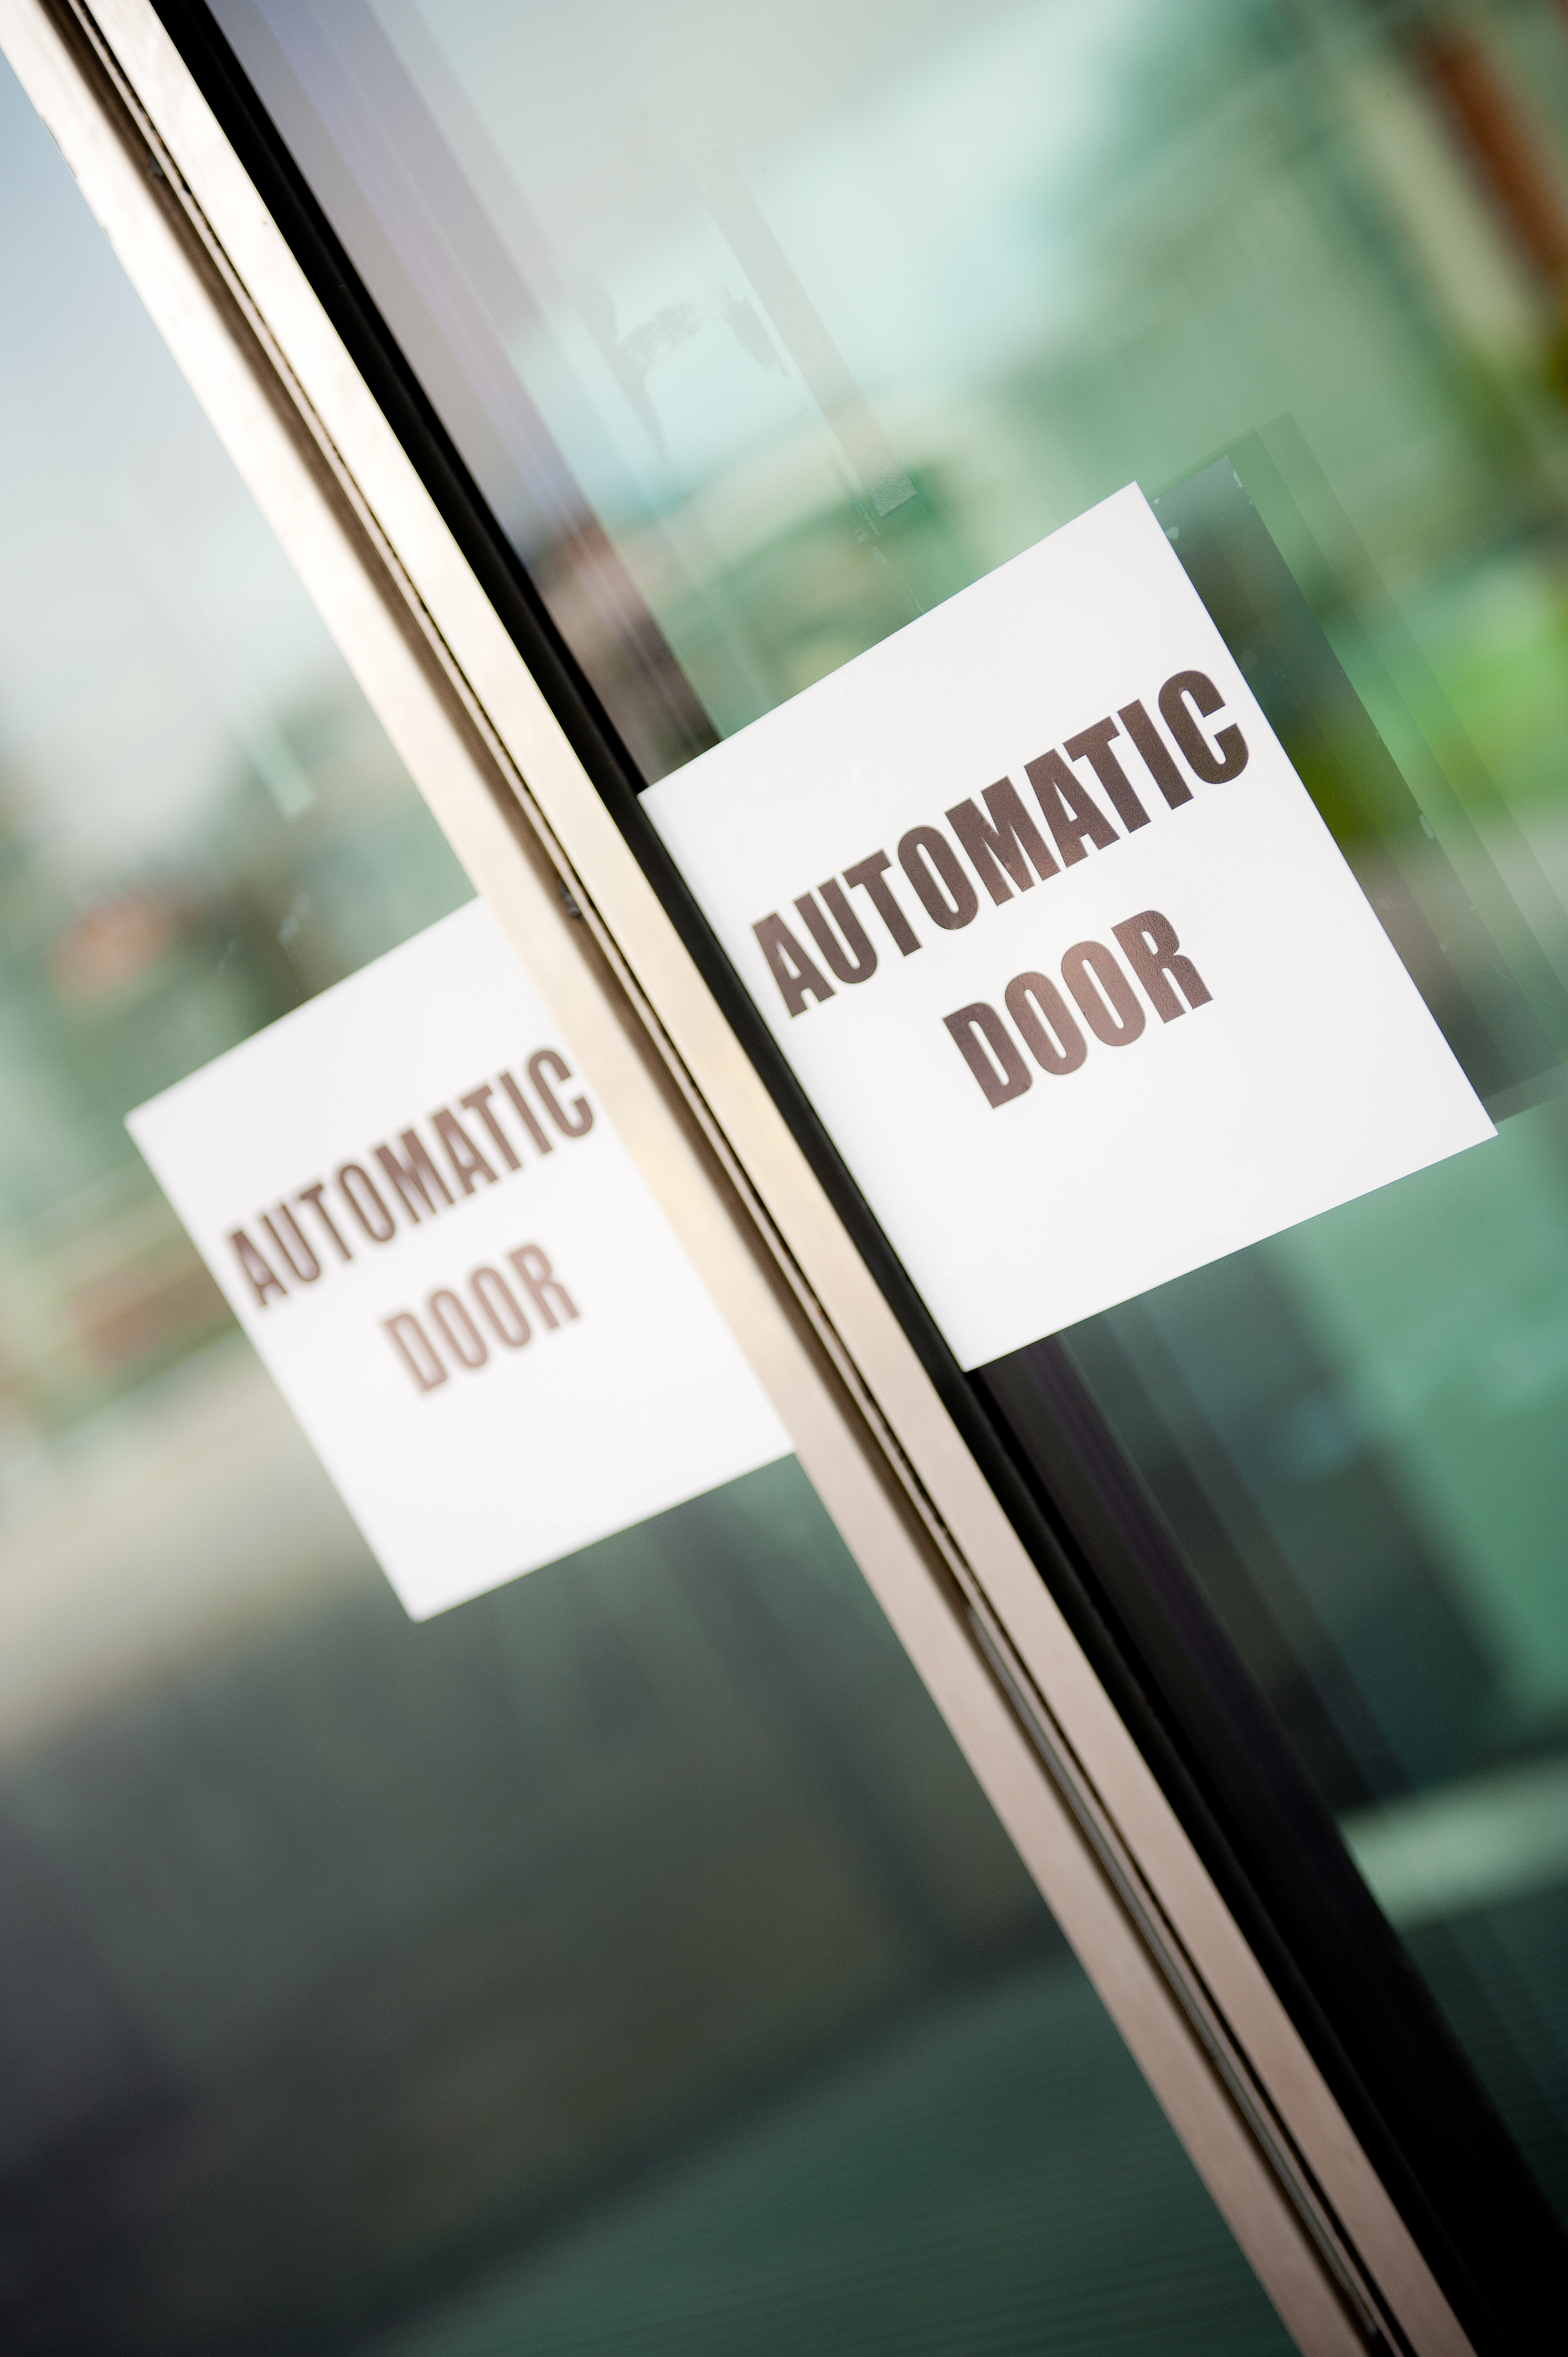 Automatic Door Signage Is It Required By Law The